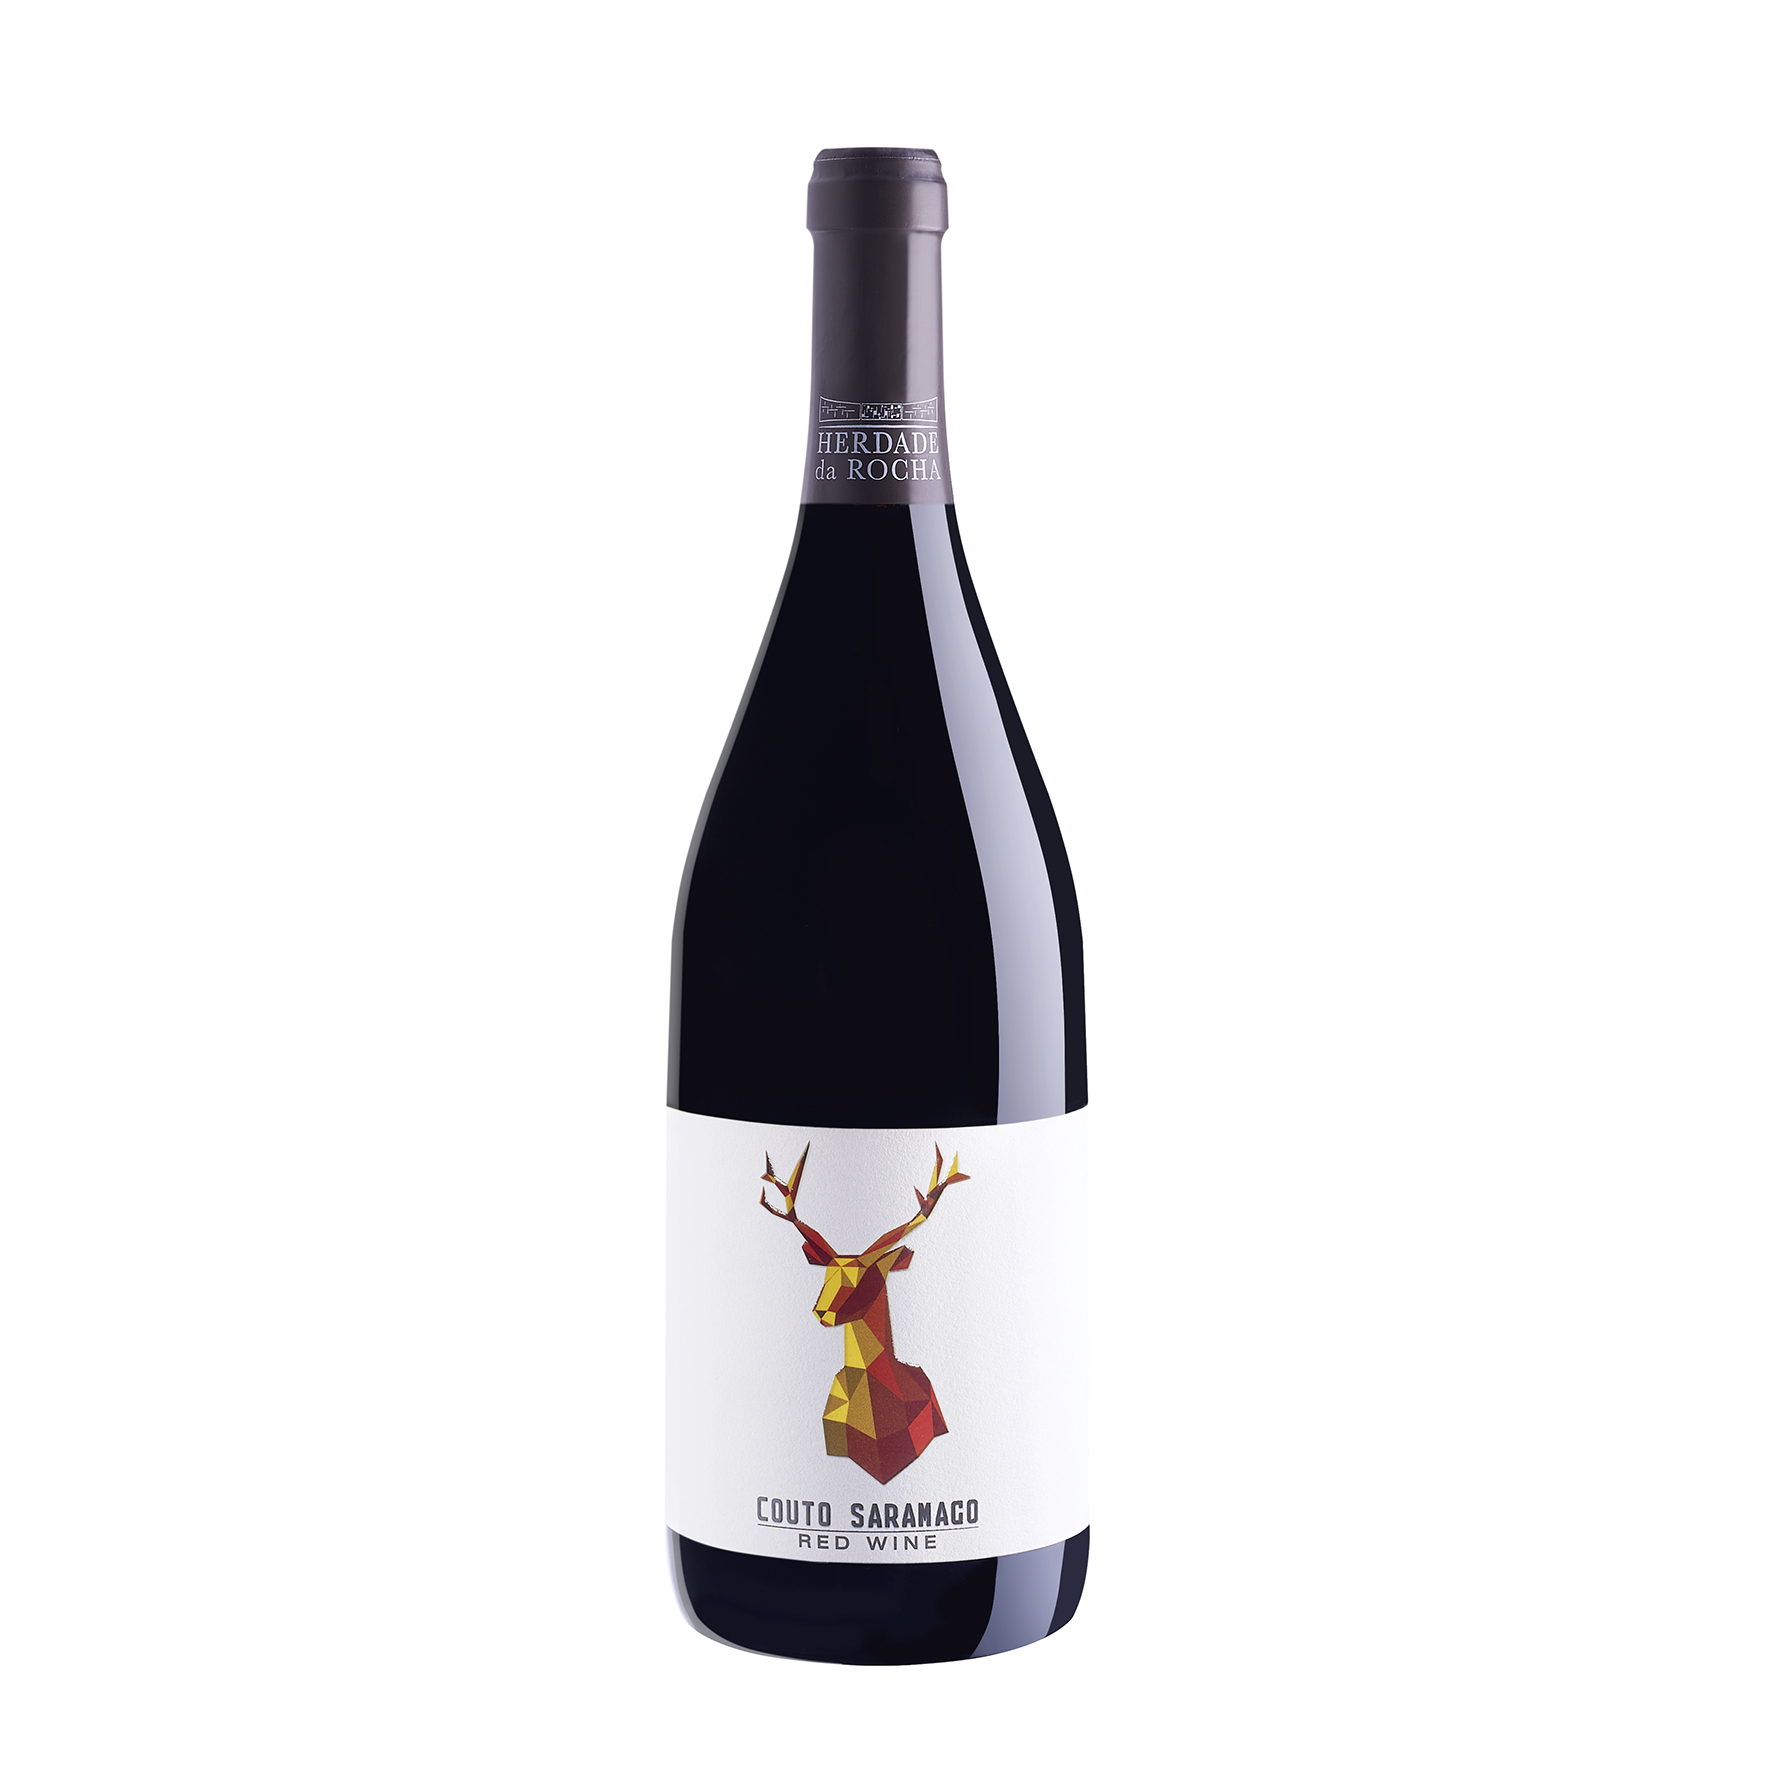 Couto Saramago Red Wine 2015